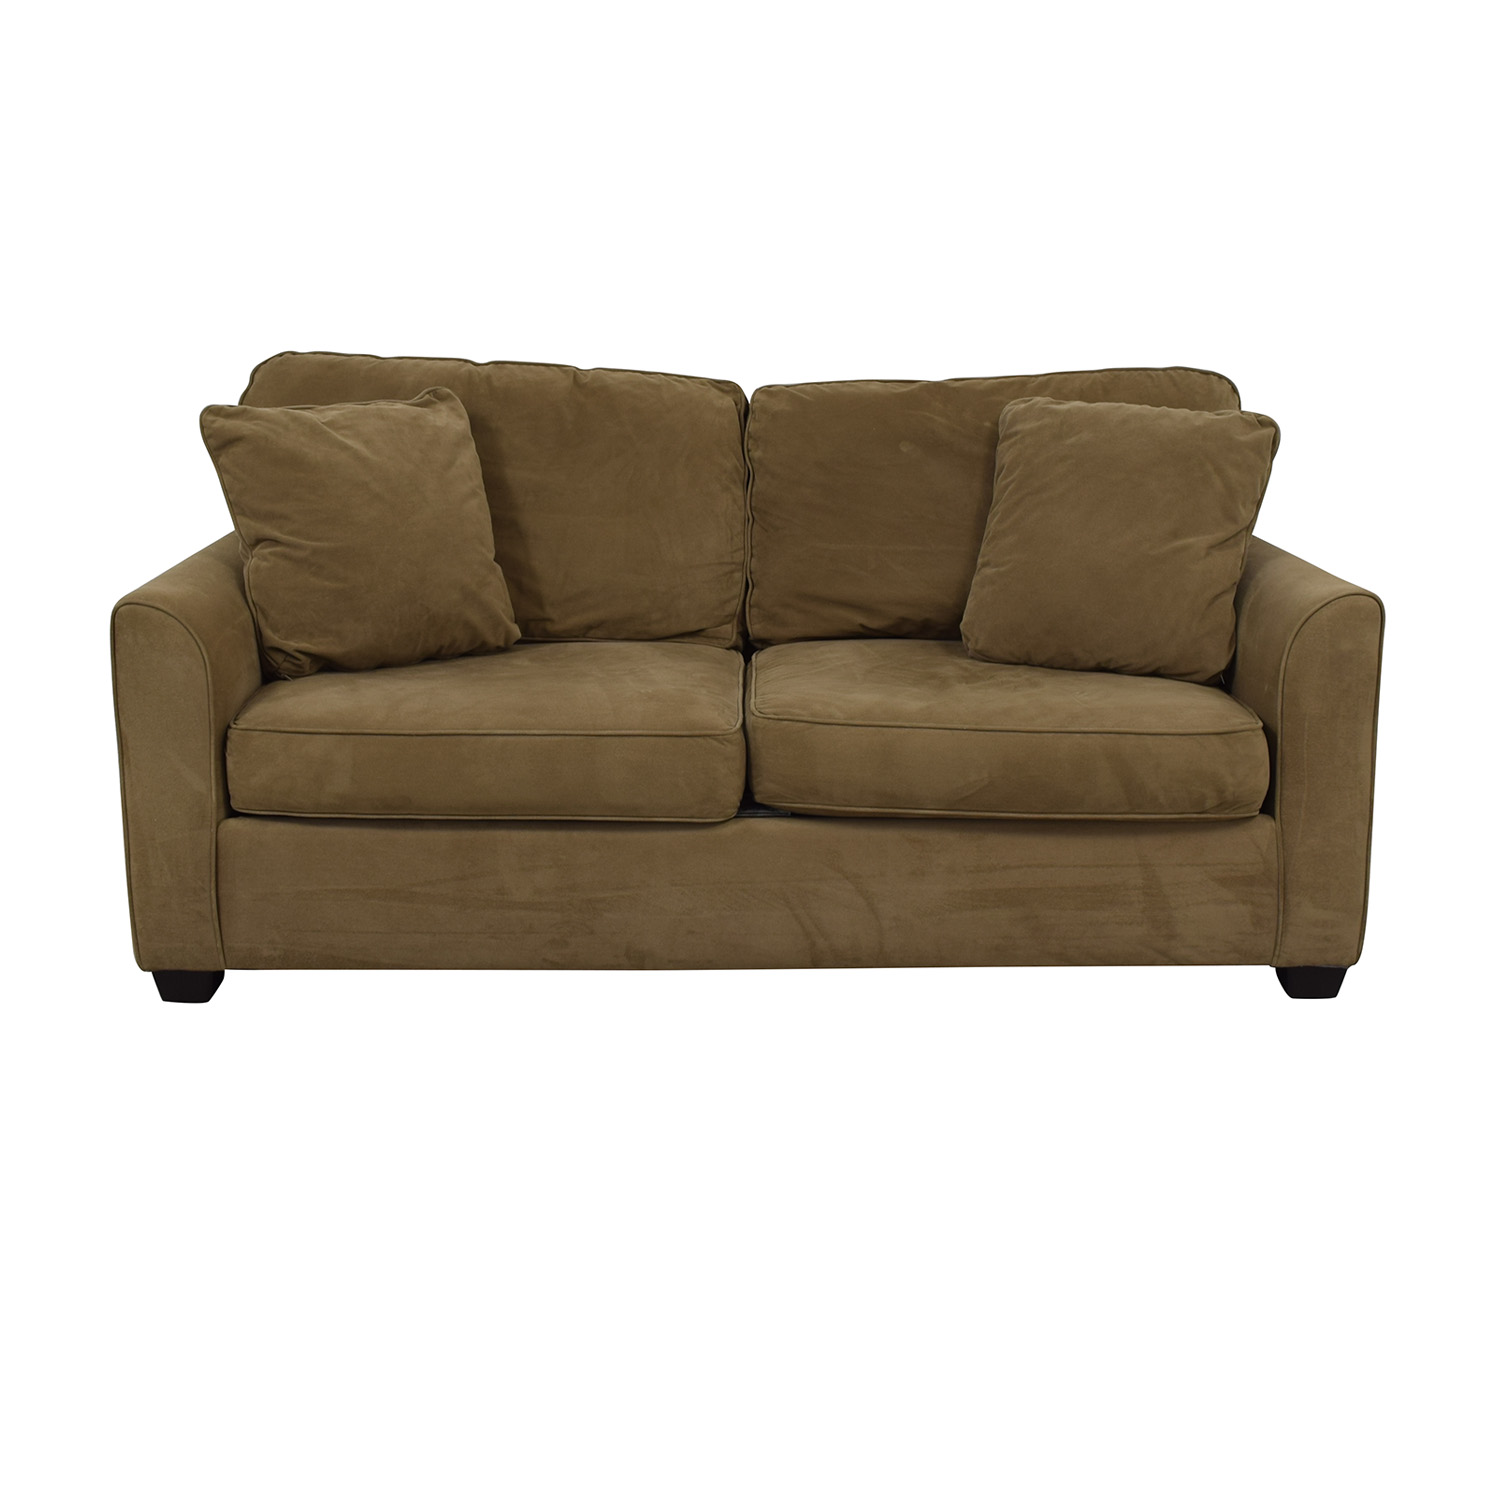 JC Penney JC Penney Two-Cushion Loveseat discount